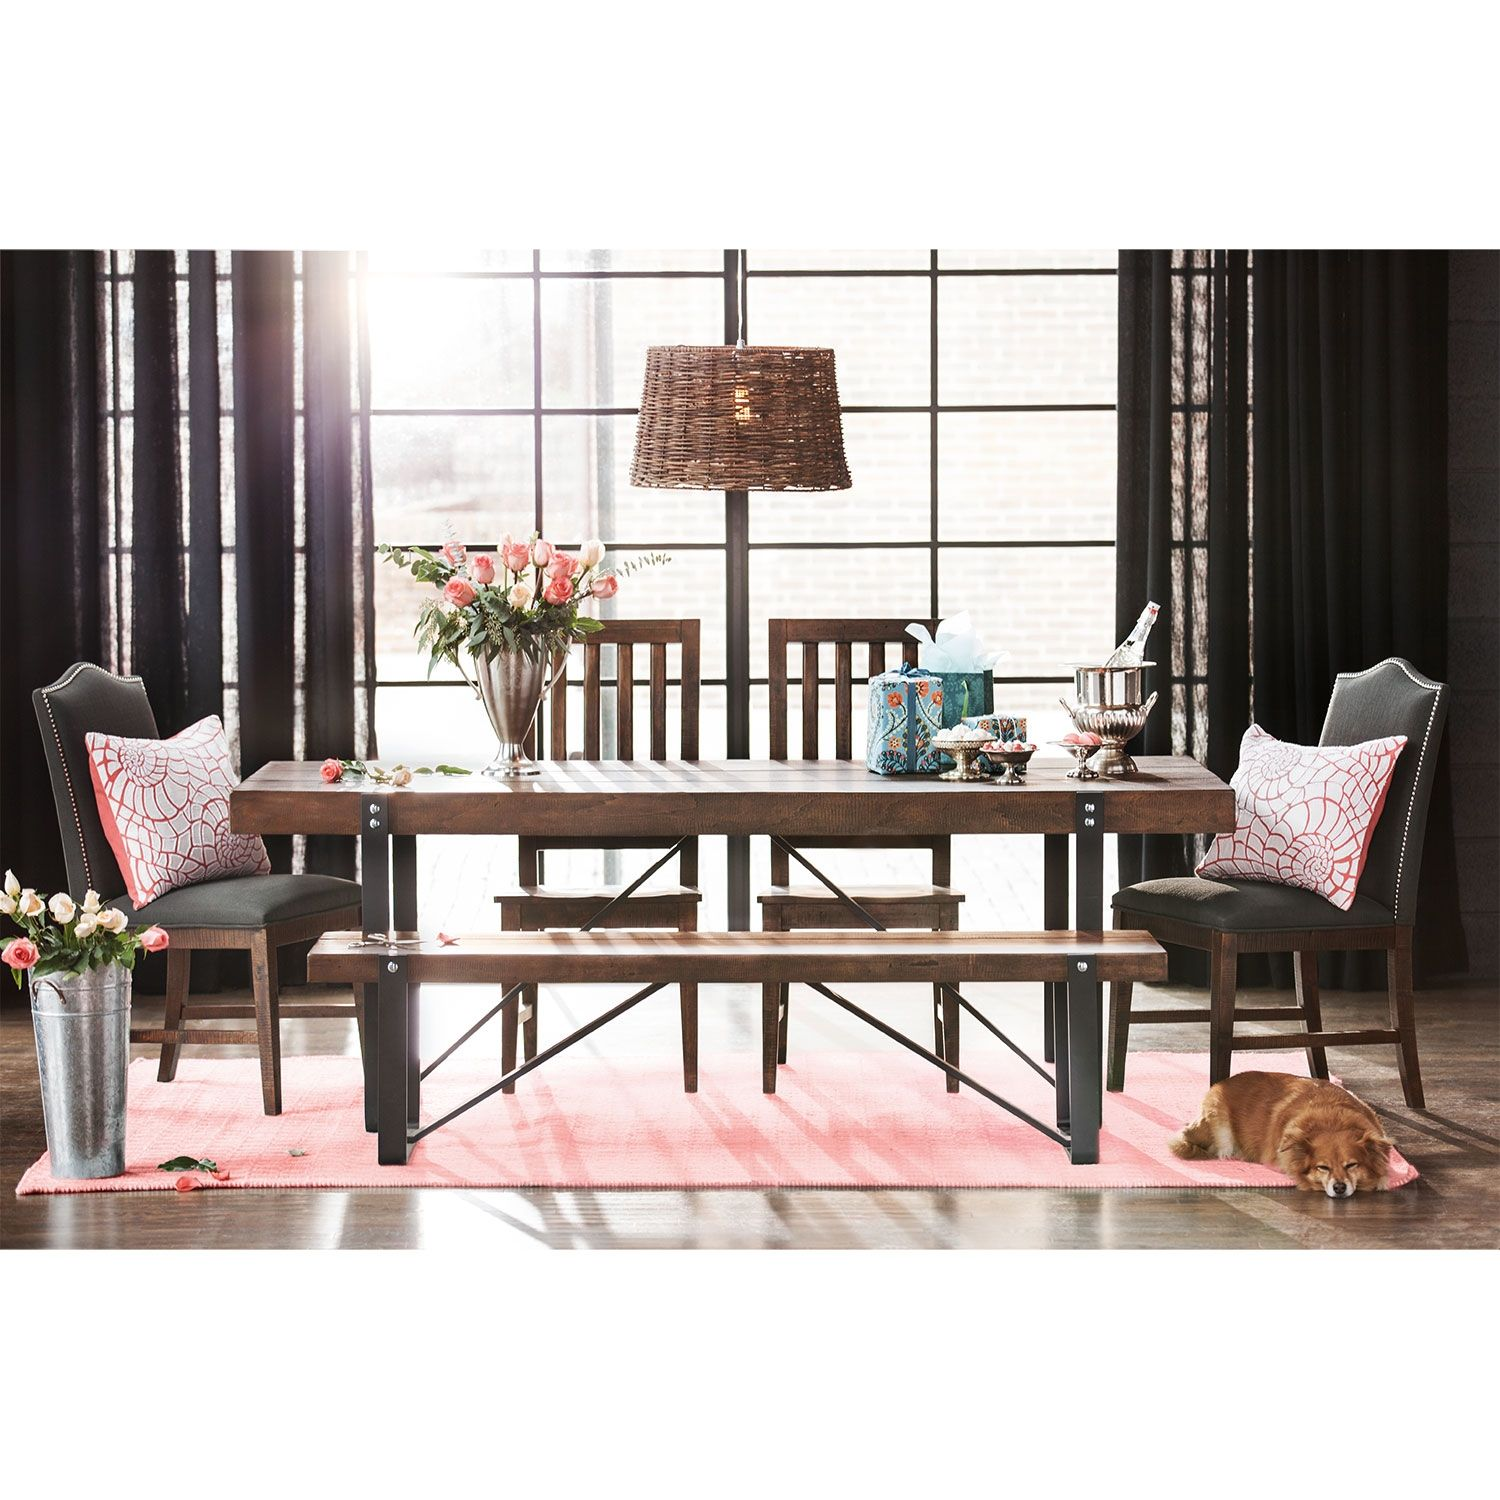 Dining Room Furniture  Ronan Plank Dining Table  For The Home Impressive Plank Dining Room Table Inspiration